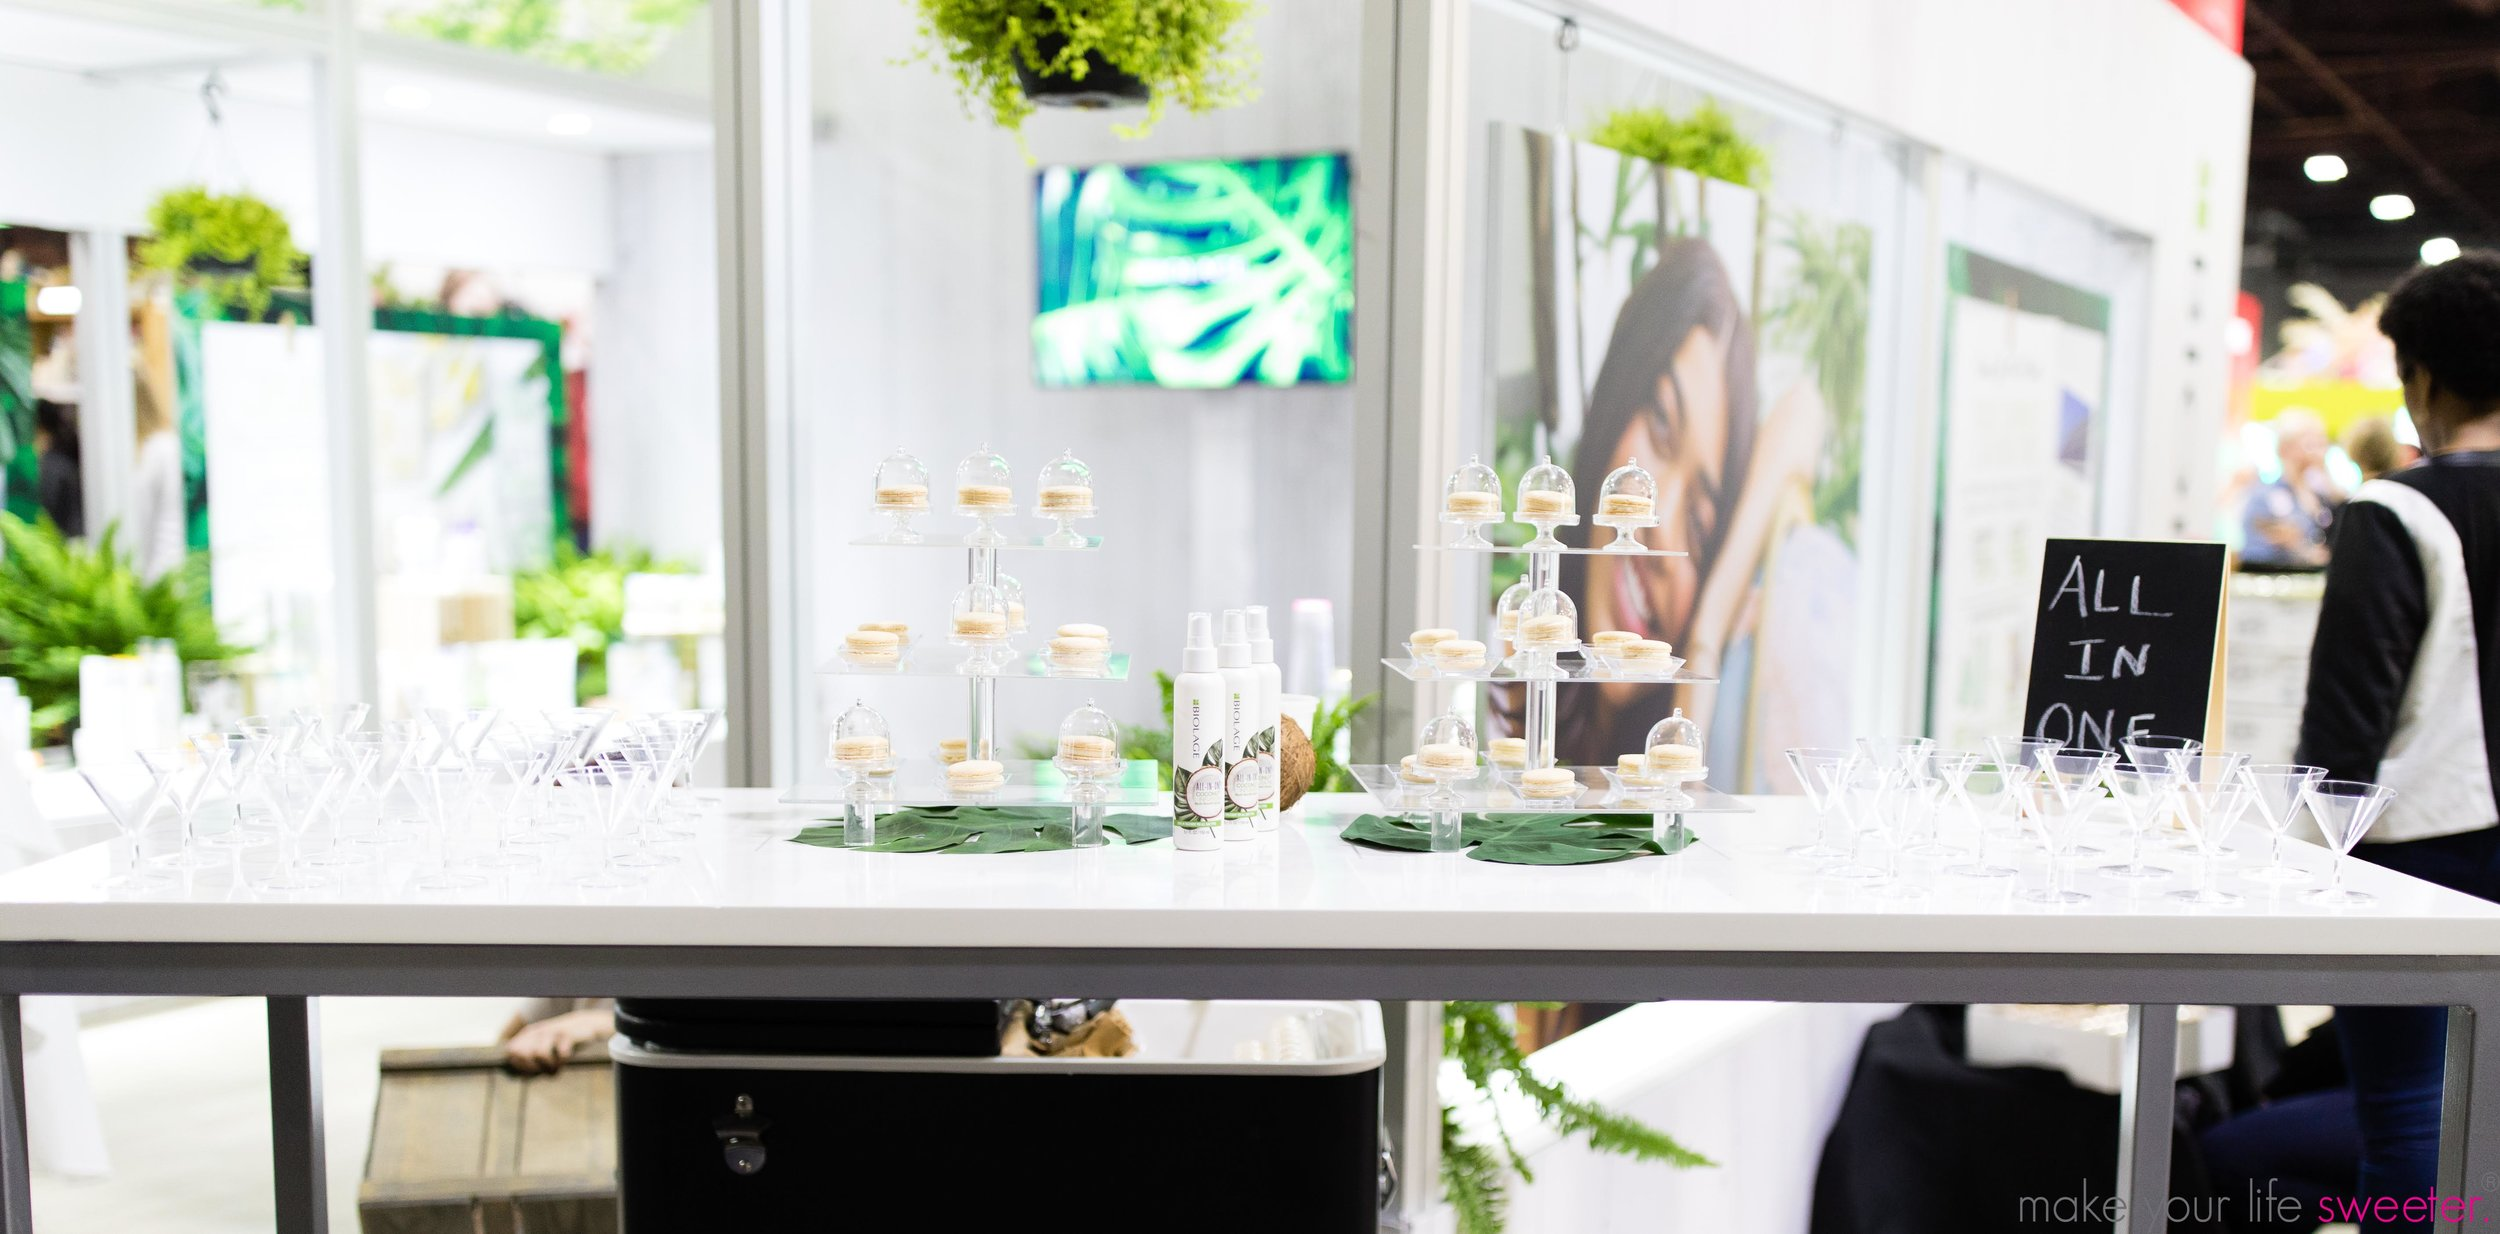 Make Your Life Sweeter Events - Drybar and L'Oreal Showcase Ulta GM Conference